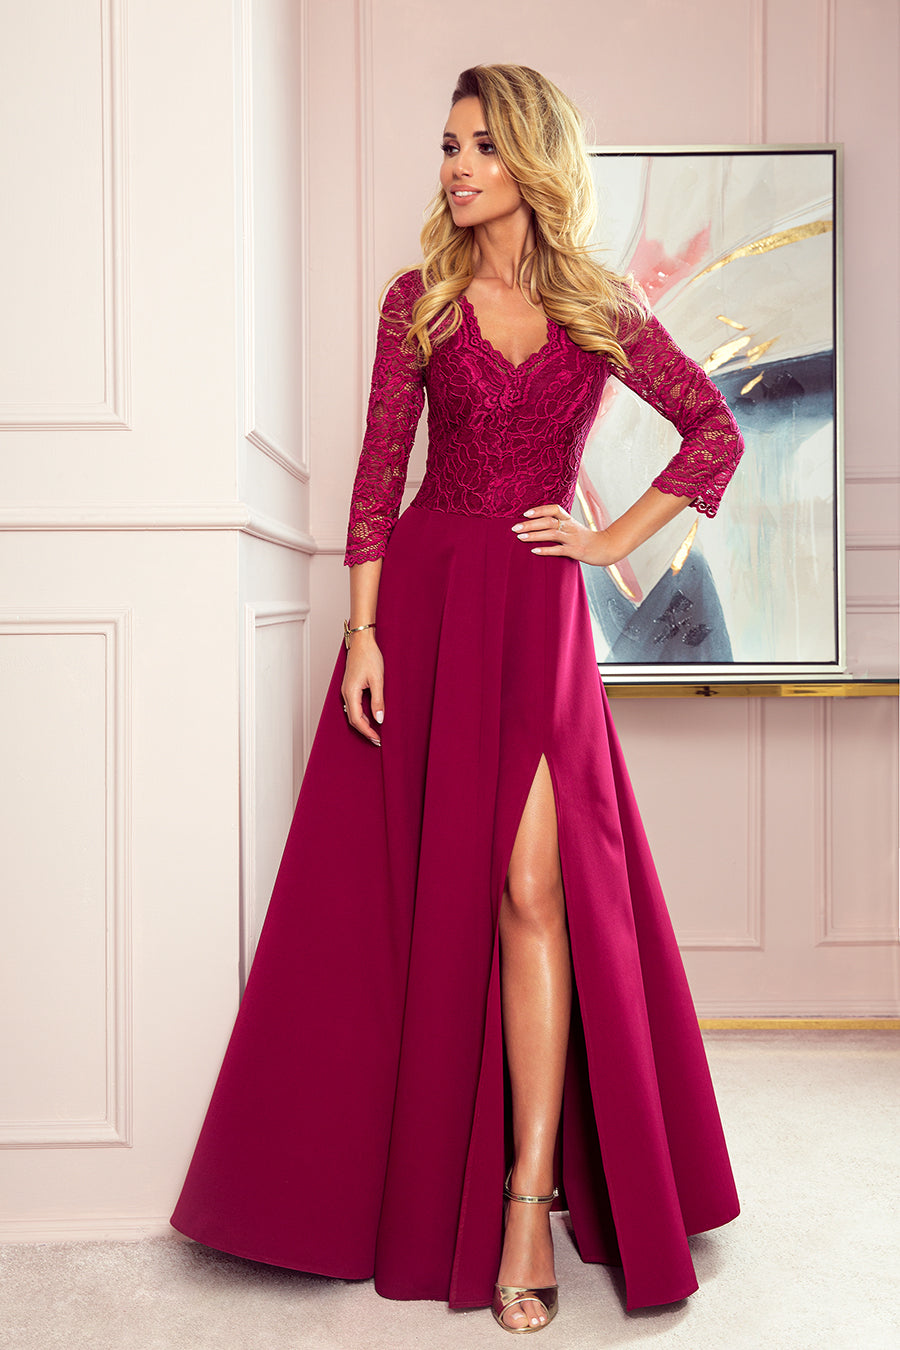 Numoco 309-1 AMBER elegant lace long dress with a neckline - Burgundy color